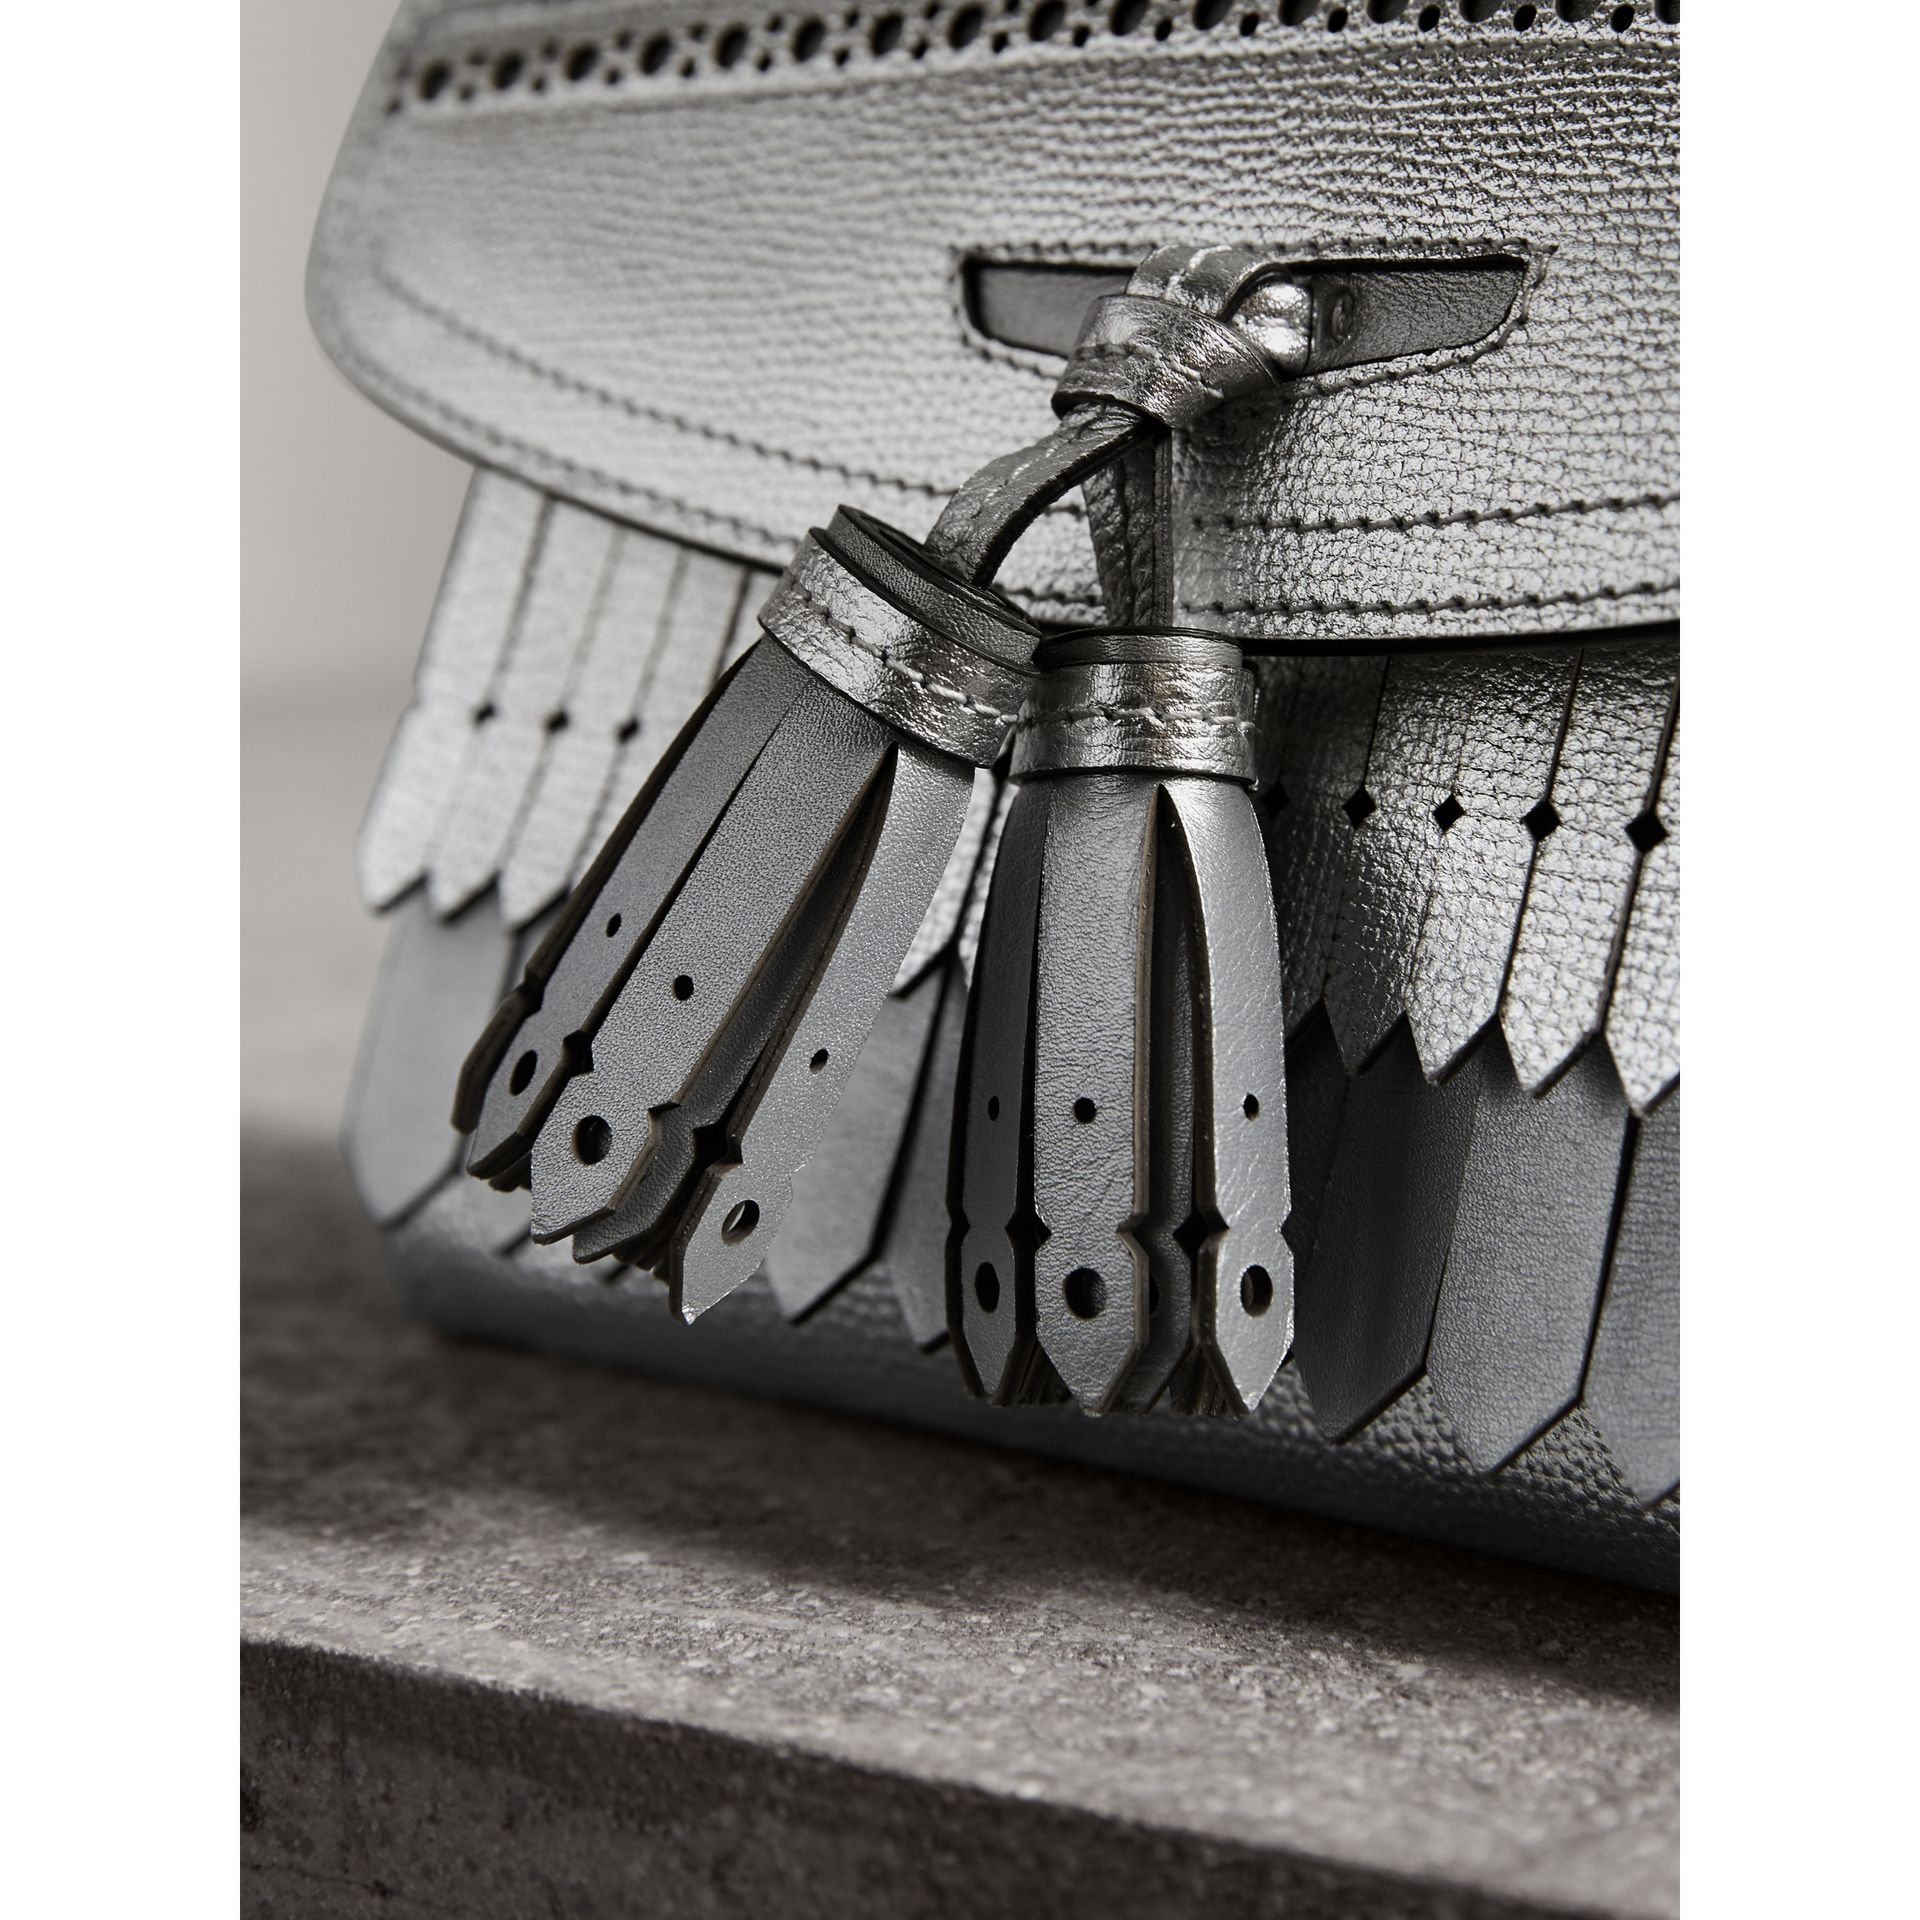 Brogue Detail Metallic Leather Crossbody Bag in Silver - Women | Burberry - gallery image 1